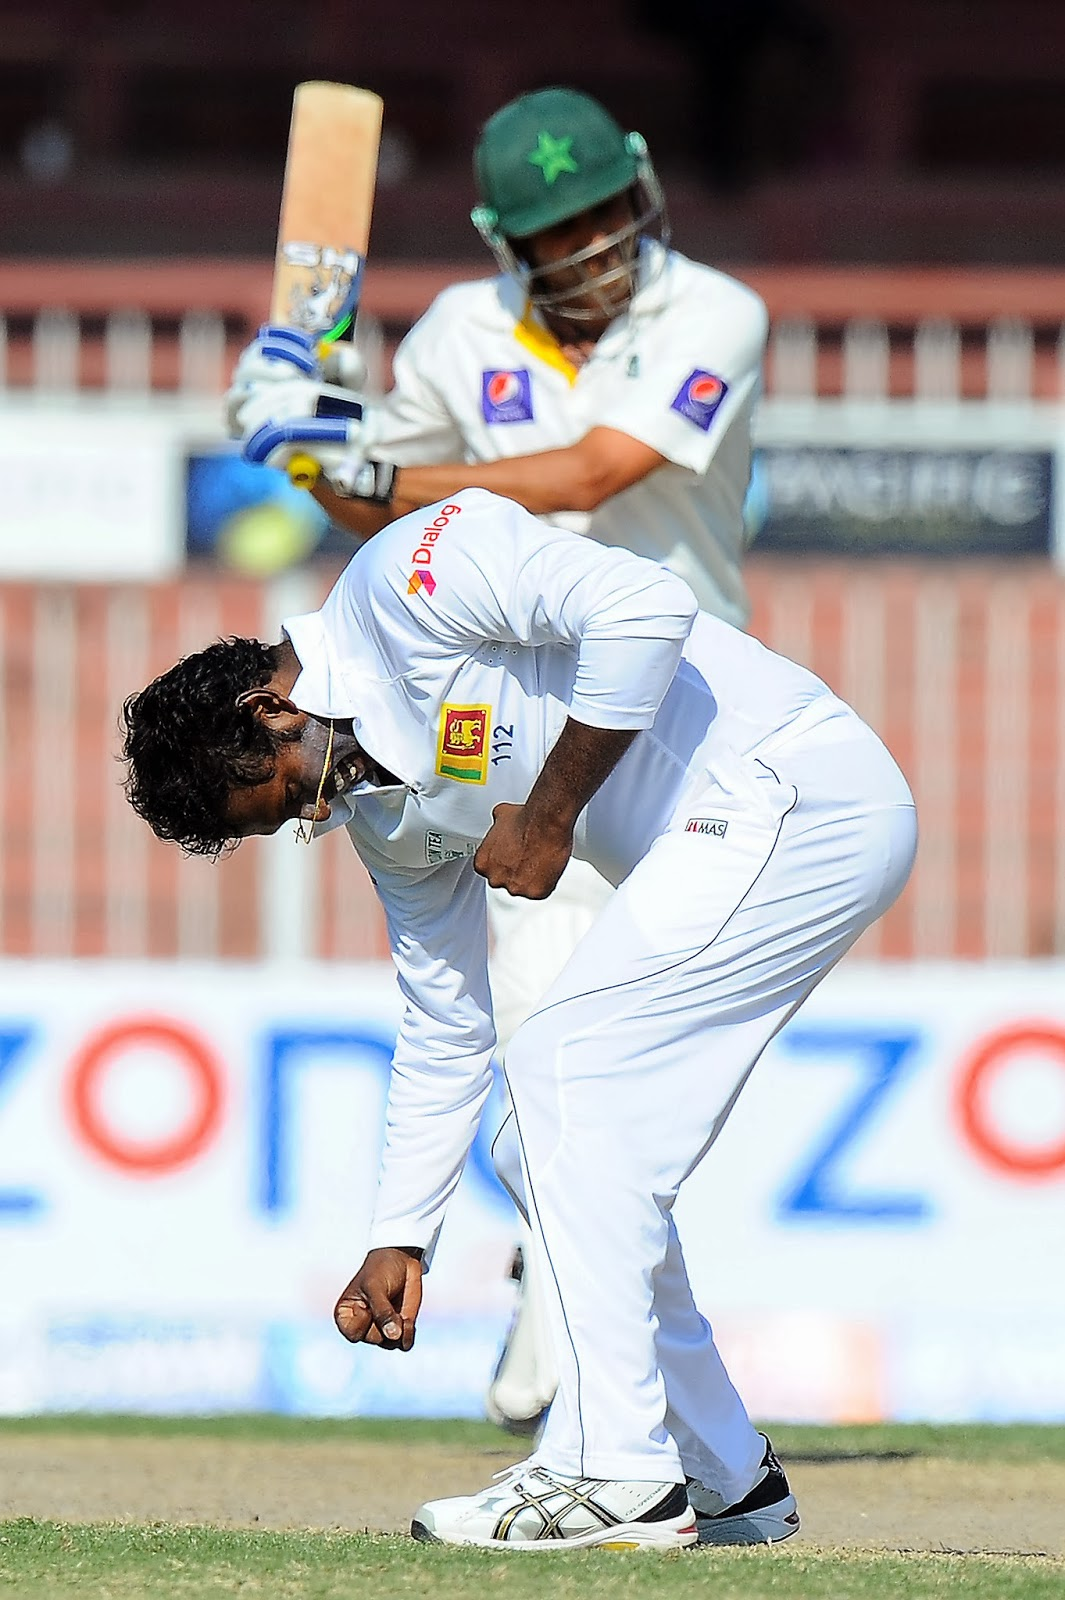 Angelo Mathews, Azhar Ali, Batsman, Captain, Century, Cricket, History, ICC, Level, Match, Misbah-ul-Haq, Pakkstan, Sarfraz Ahmed, Series, Sharjah, Sports, Sri Lanka, Test, UAE, Younis Khan,